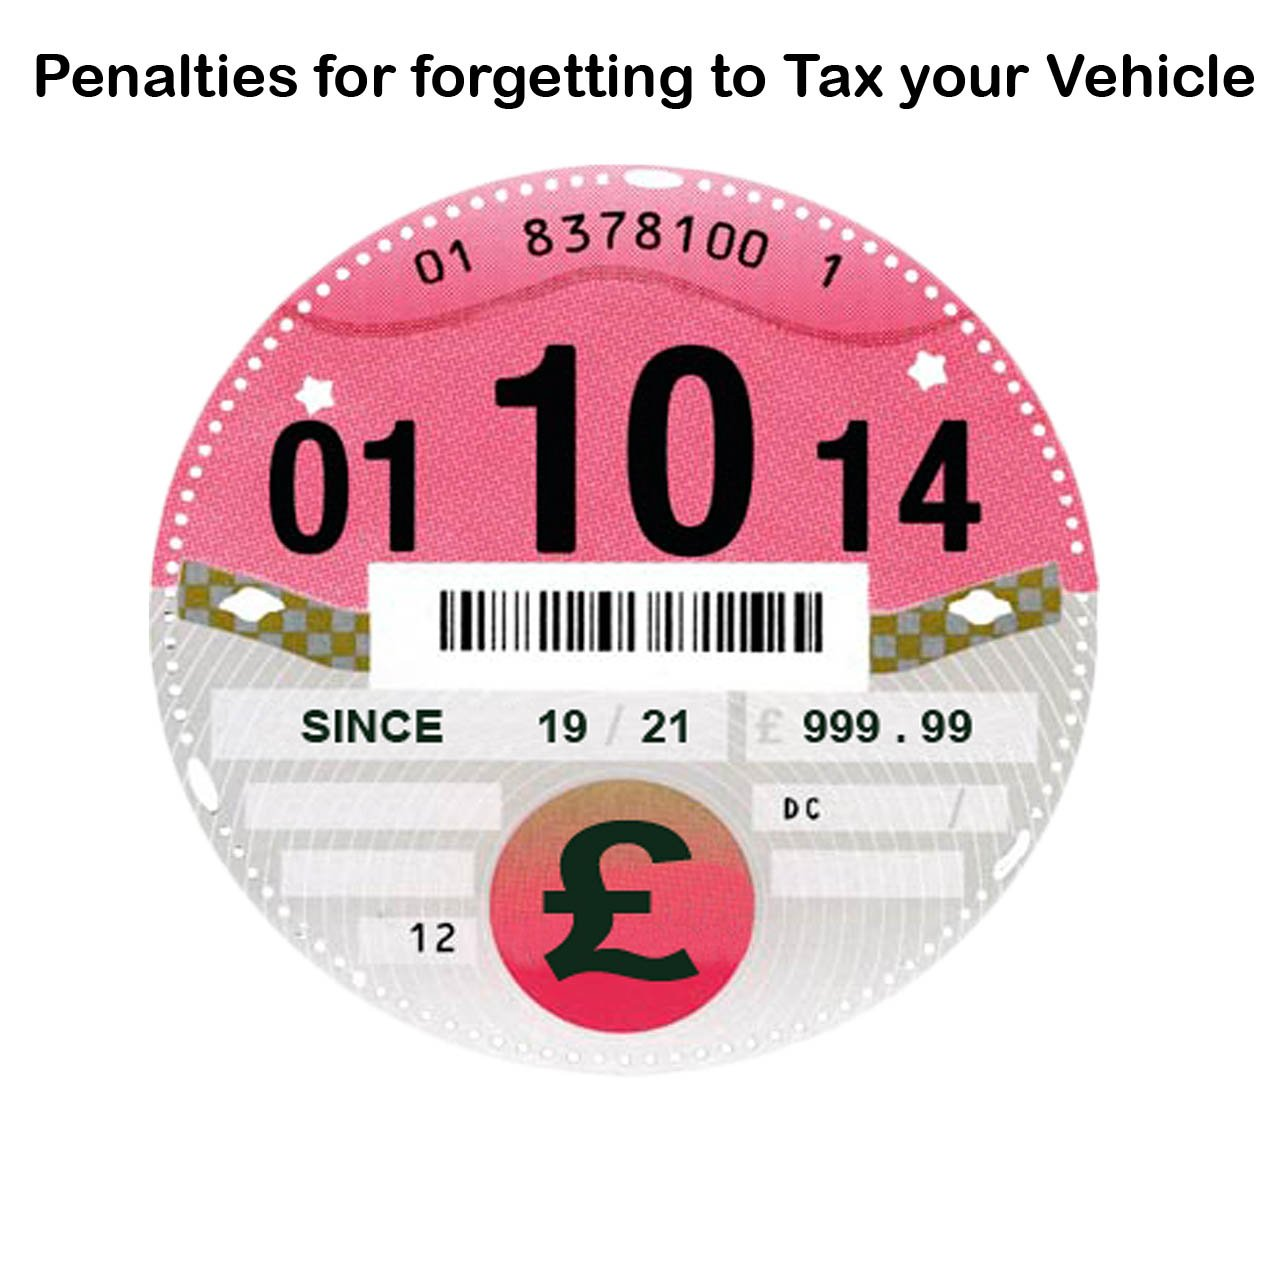 Fines for driving without Vehicle Tax 2018